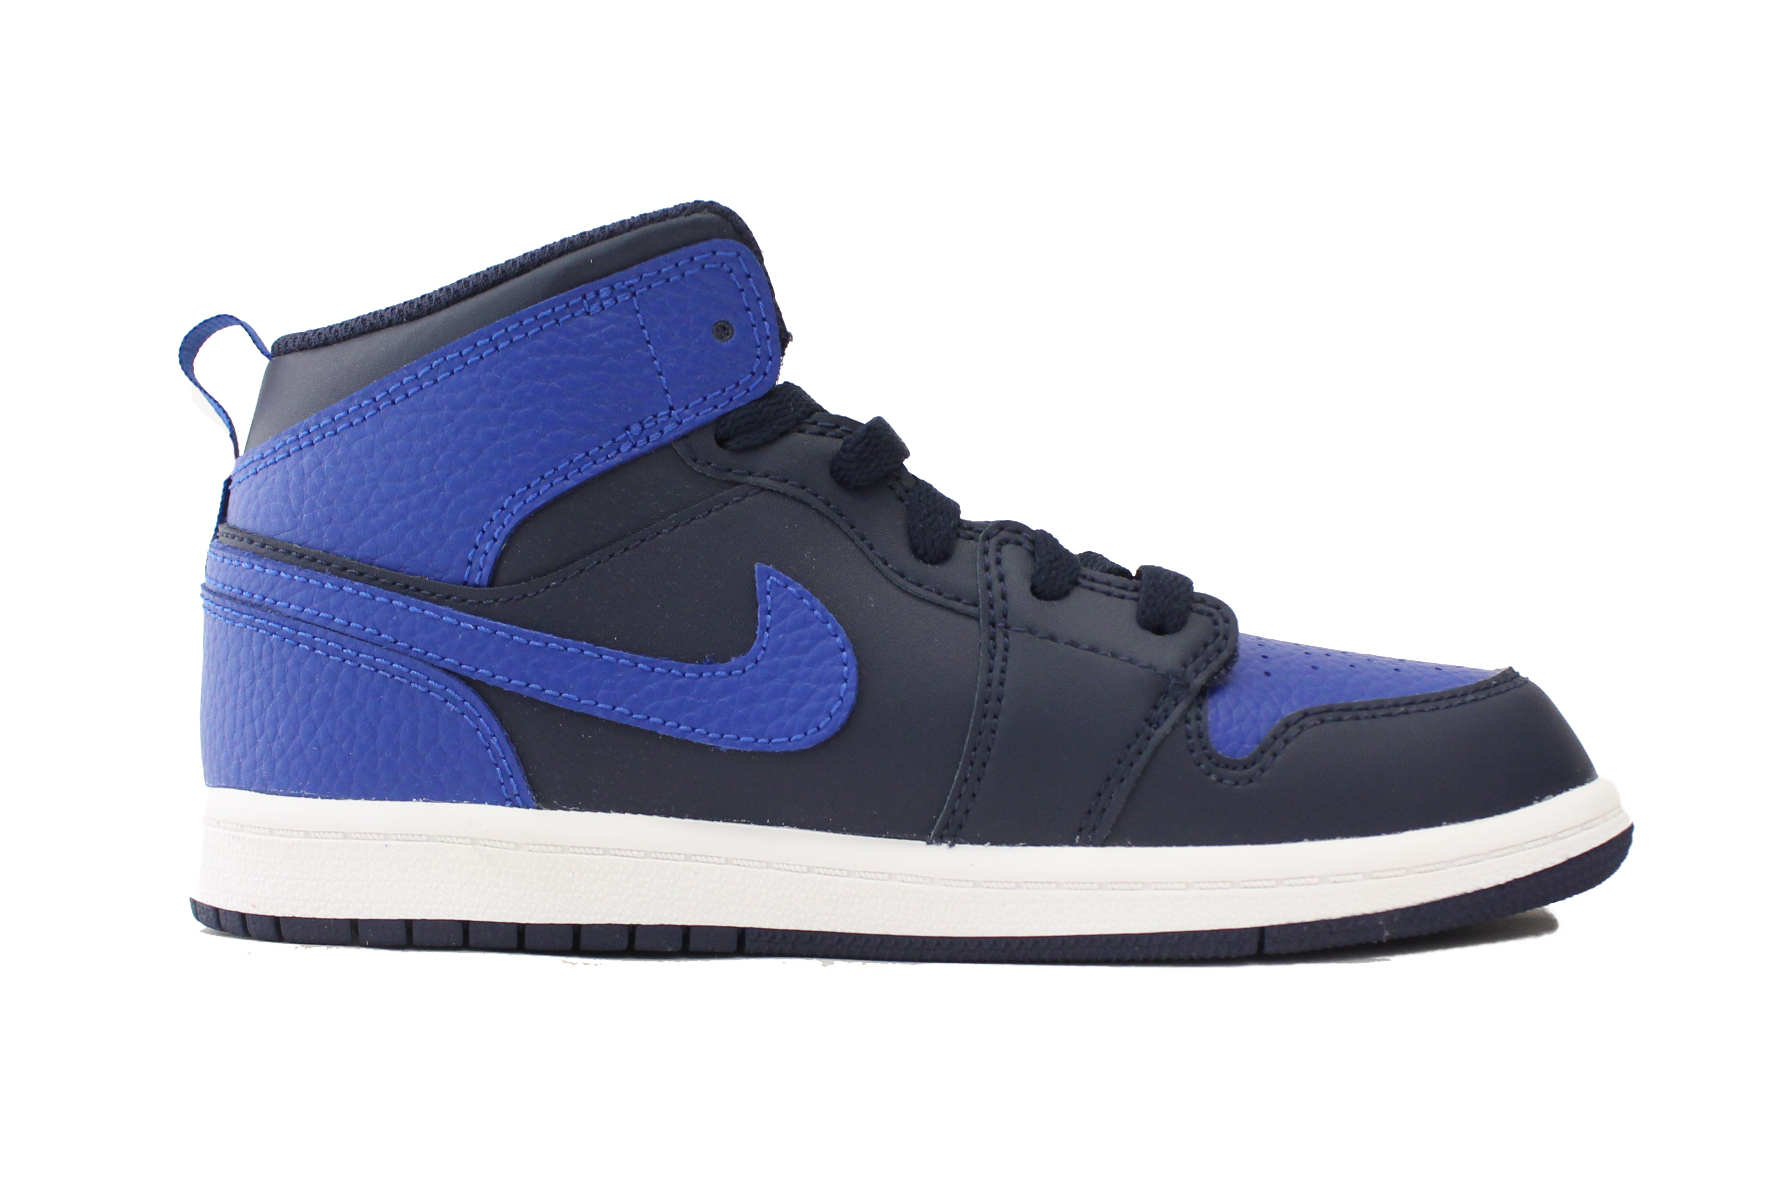 0ac5ddb4110 NIKE AIR JORDAN 1 MID PS SZ 2 Y KIDS OBSIDIAN GAME ROYAL WHITE NAVY 640734  412 - Walmart.com